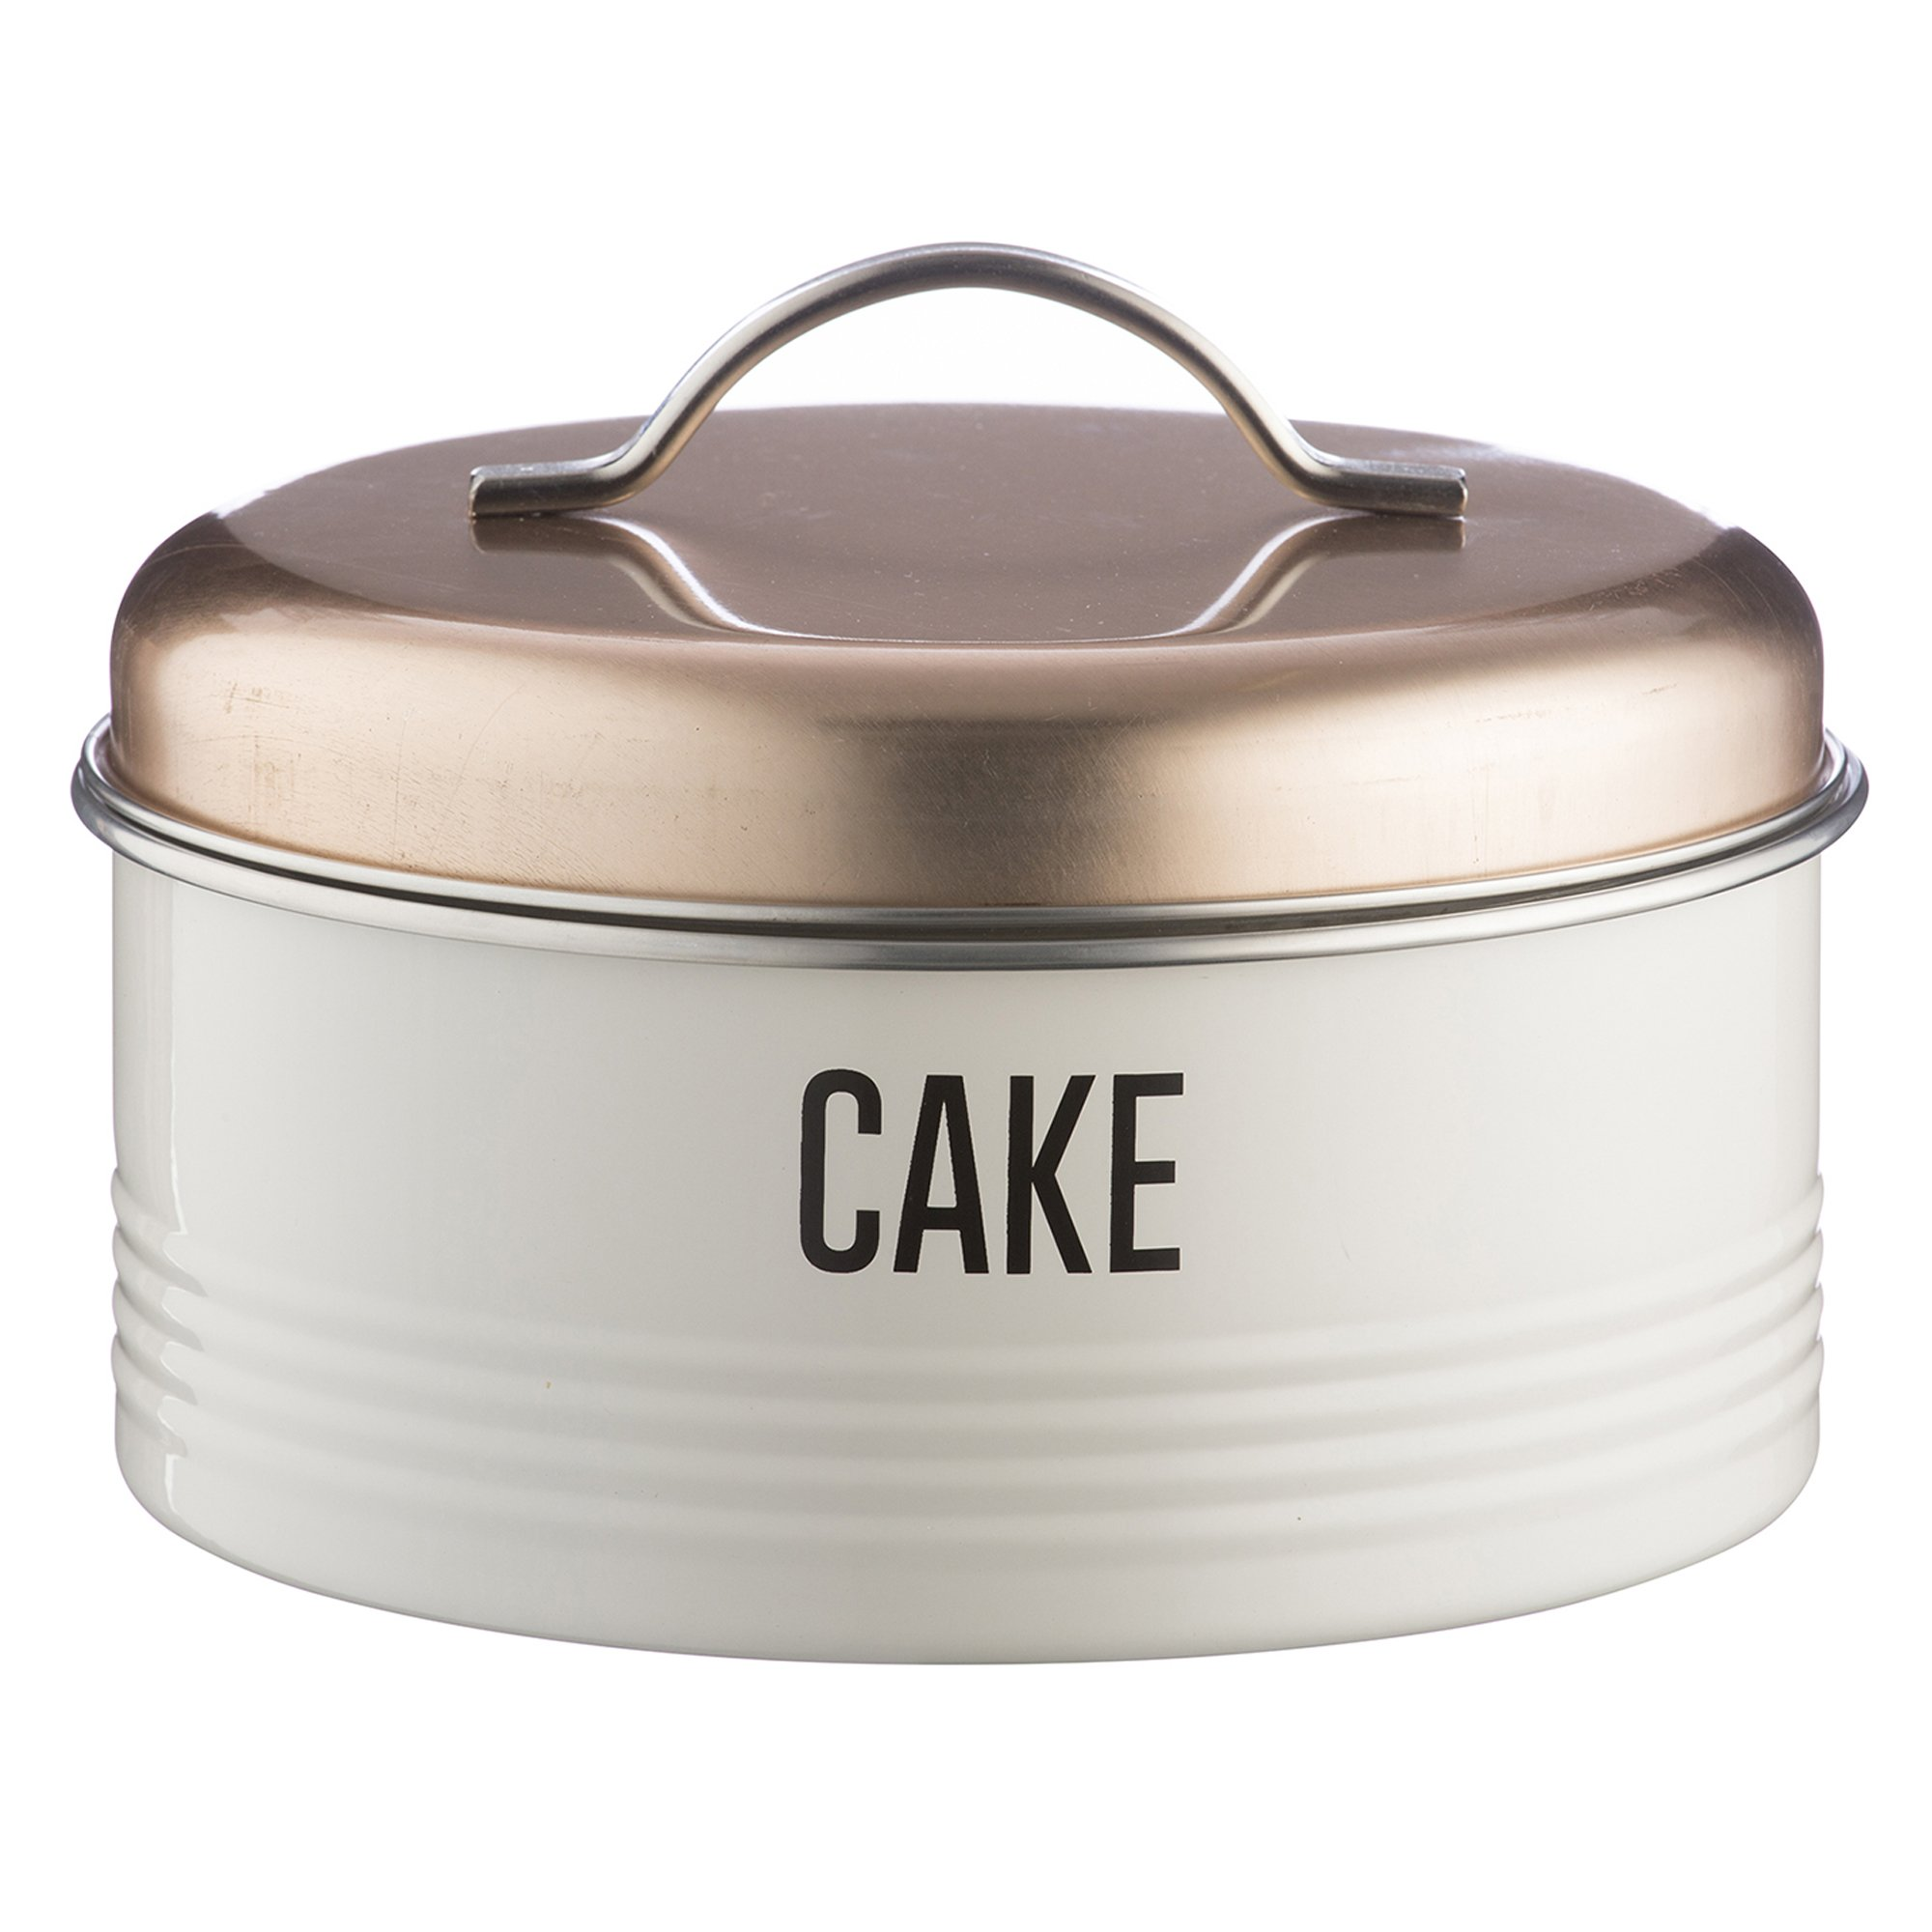 Typhoon Vintage Copper Coated Steel Cake Storage Tin with Airtight Lid; Designed To Hold Cakes, Muffins and Sweet Treats; 128-Fluid Ounces; Copper and White